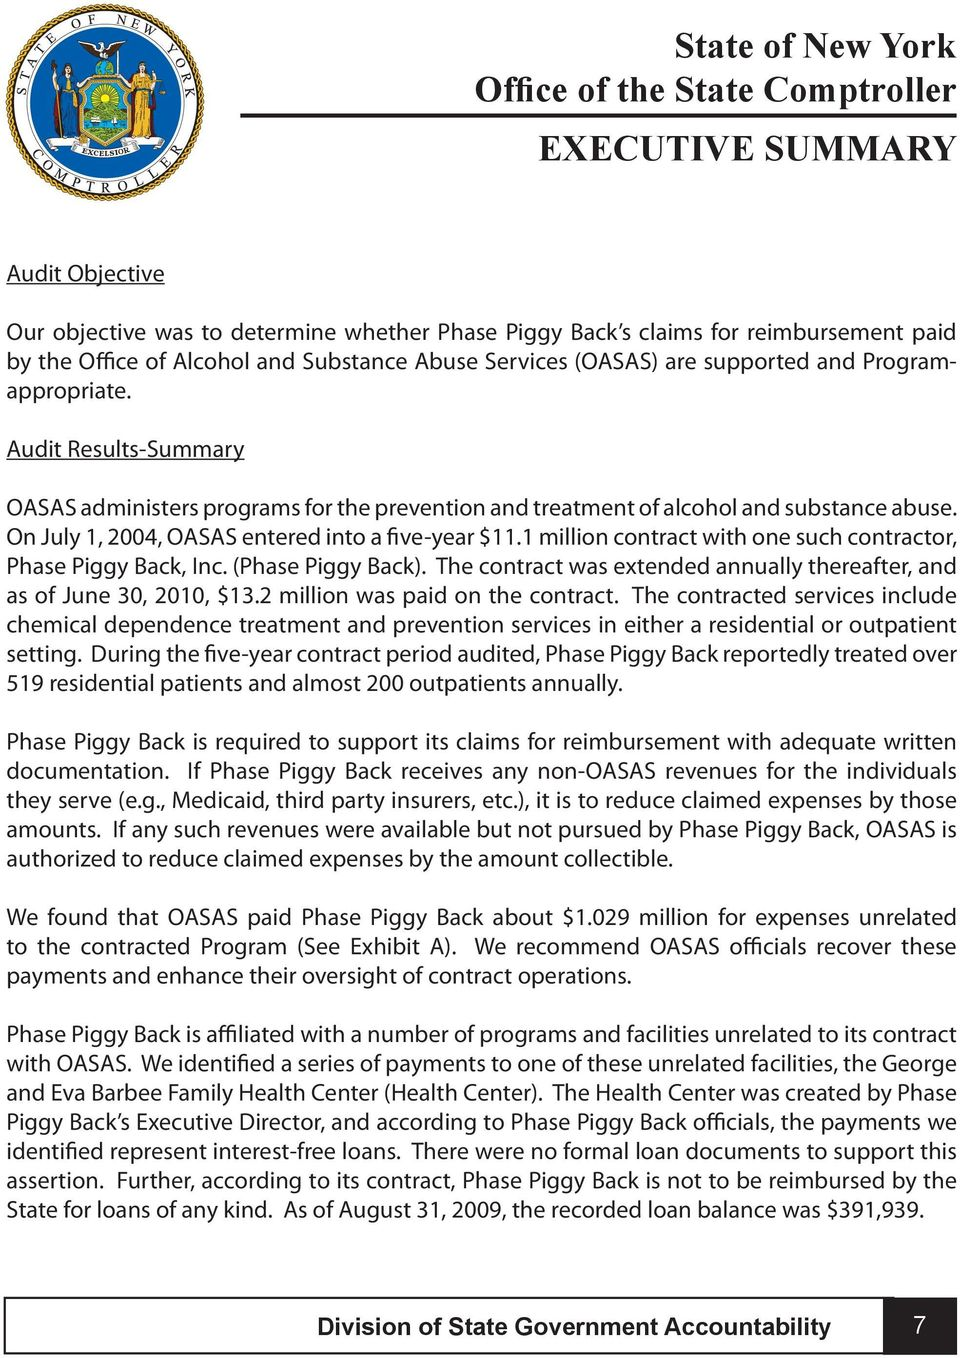 Audit Results-Summary OASAS administers programs for the prevention and treatment of alcohol and substance abuse. On July 1, 2004, OASAS entered into a five-year $11.